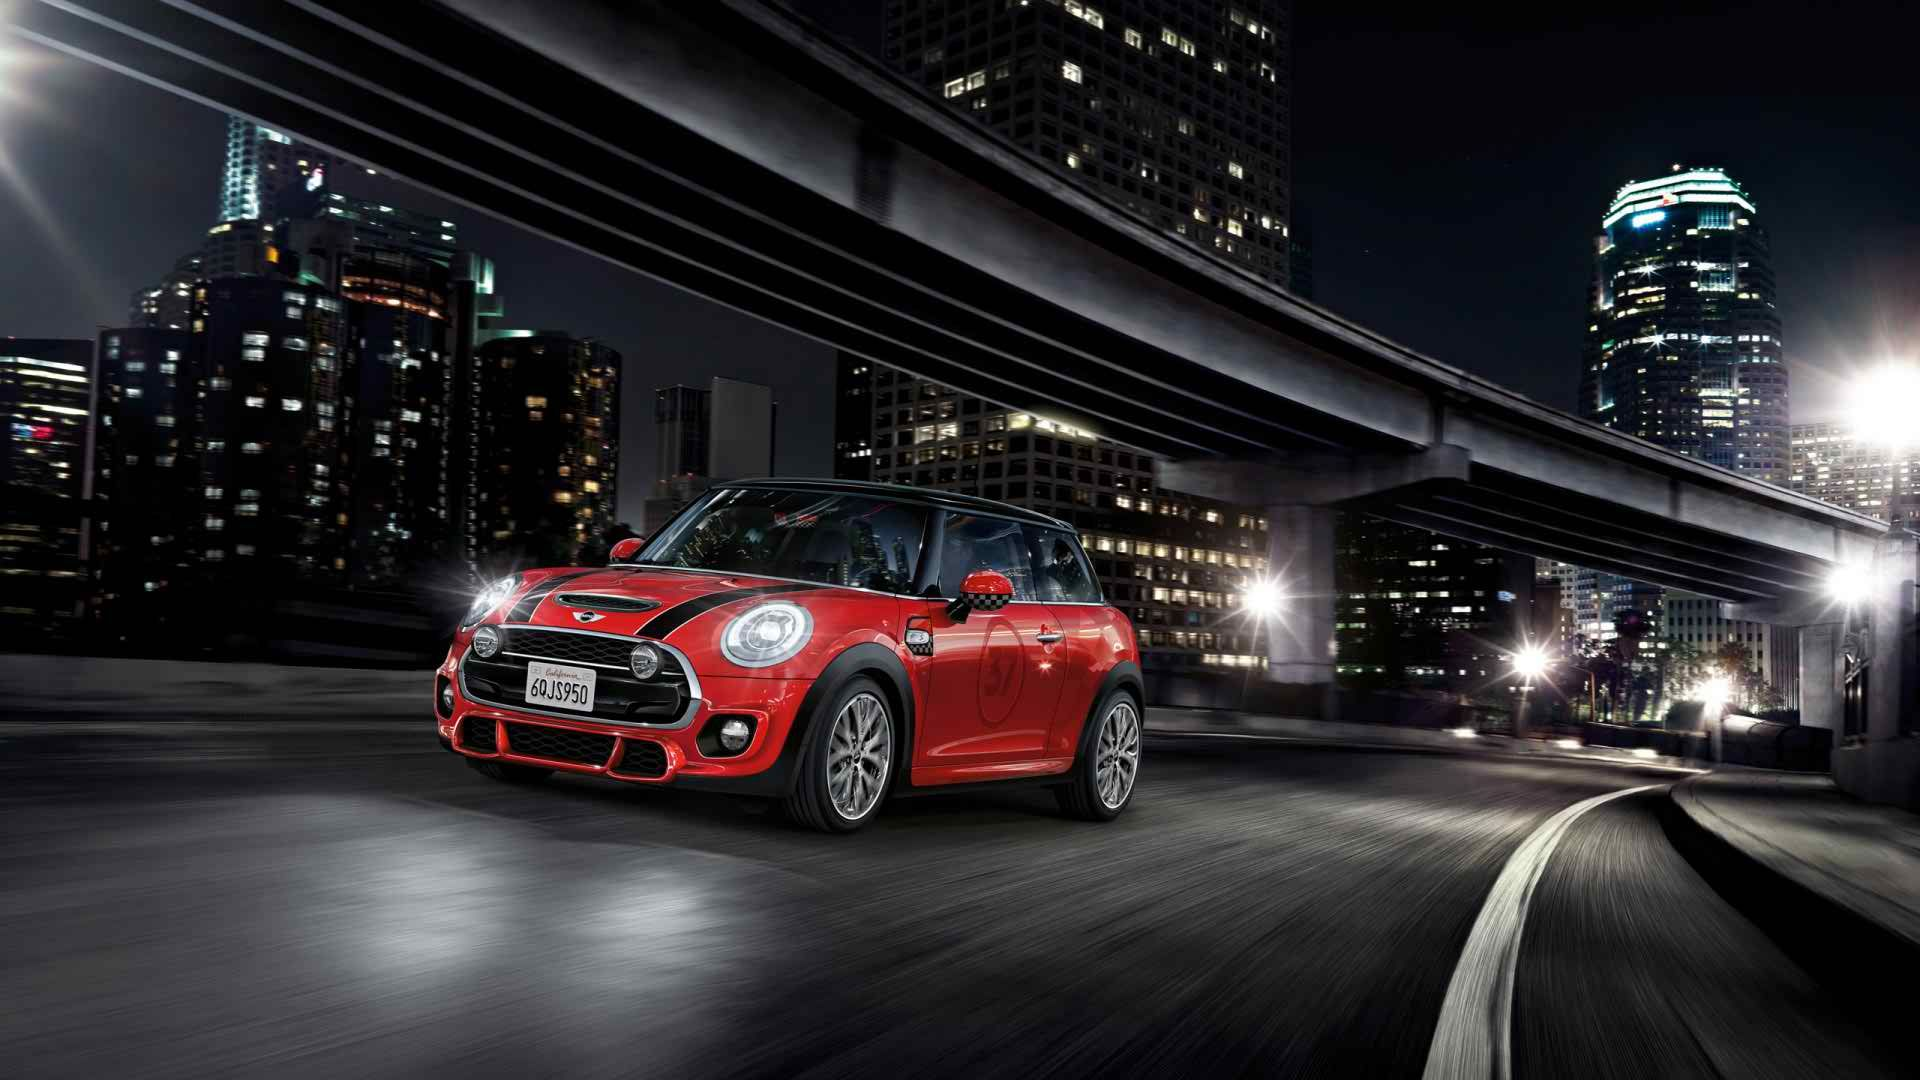 mini cooper hd wallpapers 5 | mini cooper hd wallpapers